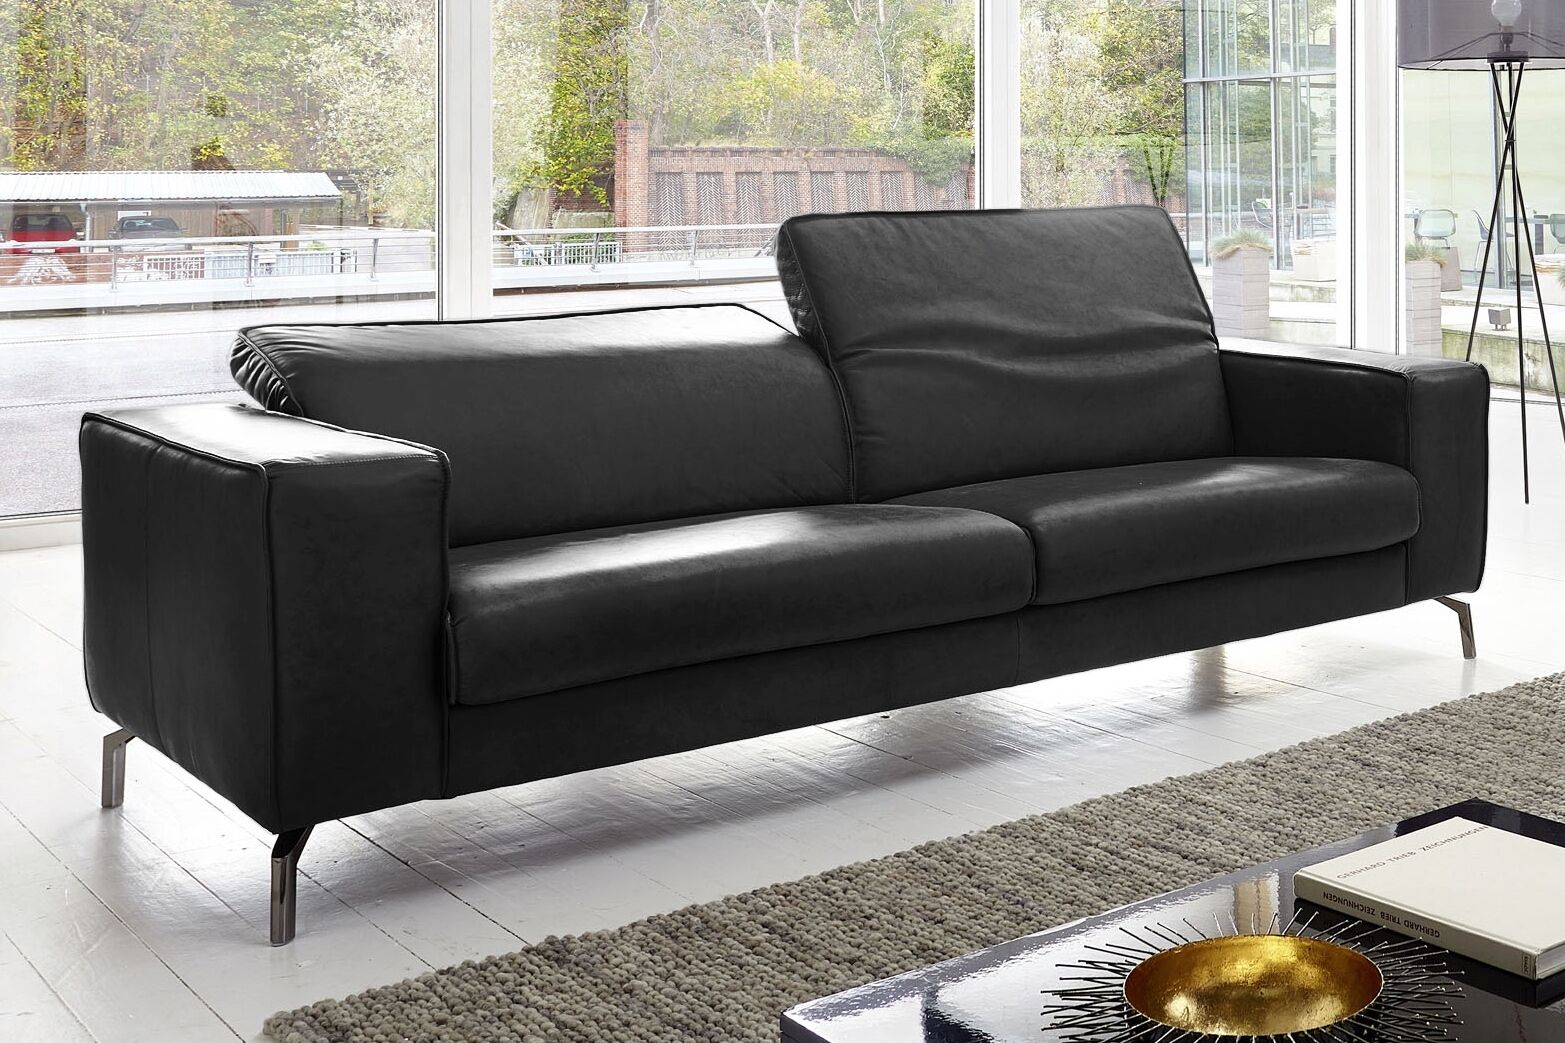 vicenza leder sofa couch garnitur 2er oder 2 5 sitzer oder 3er echt leder neu eur. Black Bedroom Furniture Sets. Home Design Ideas